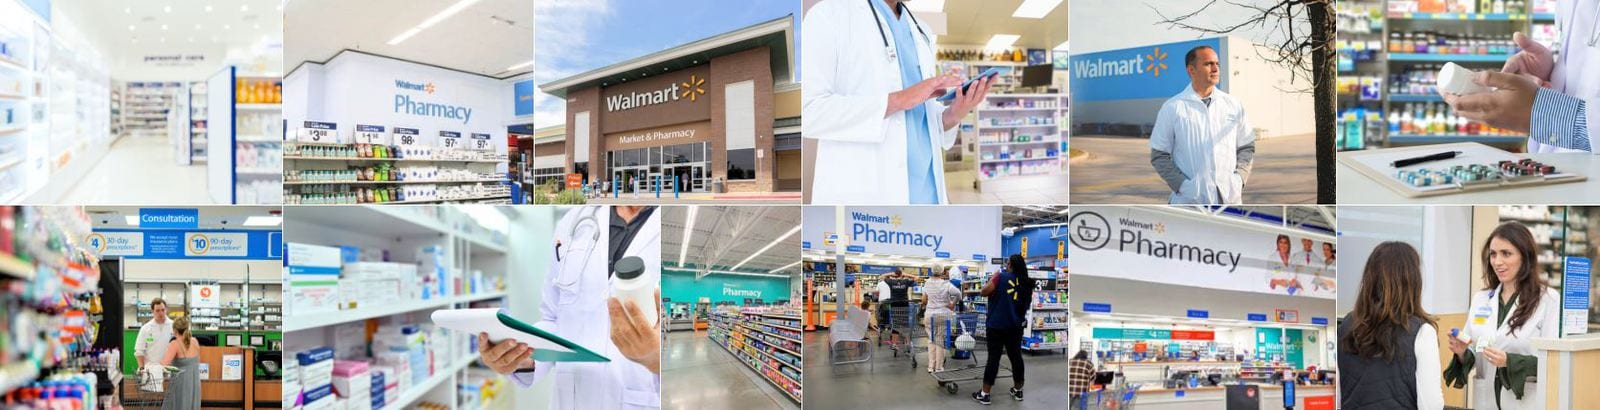 Walmart Pharmacy of 11701 Metcalf Ave